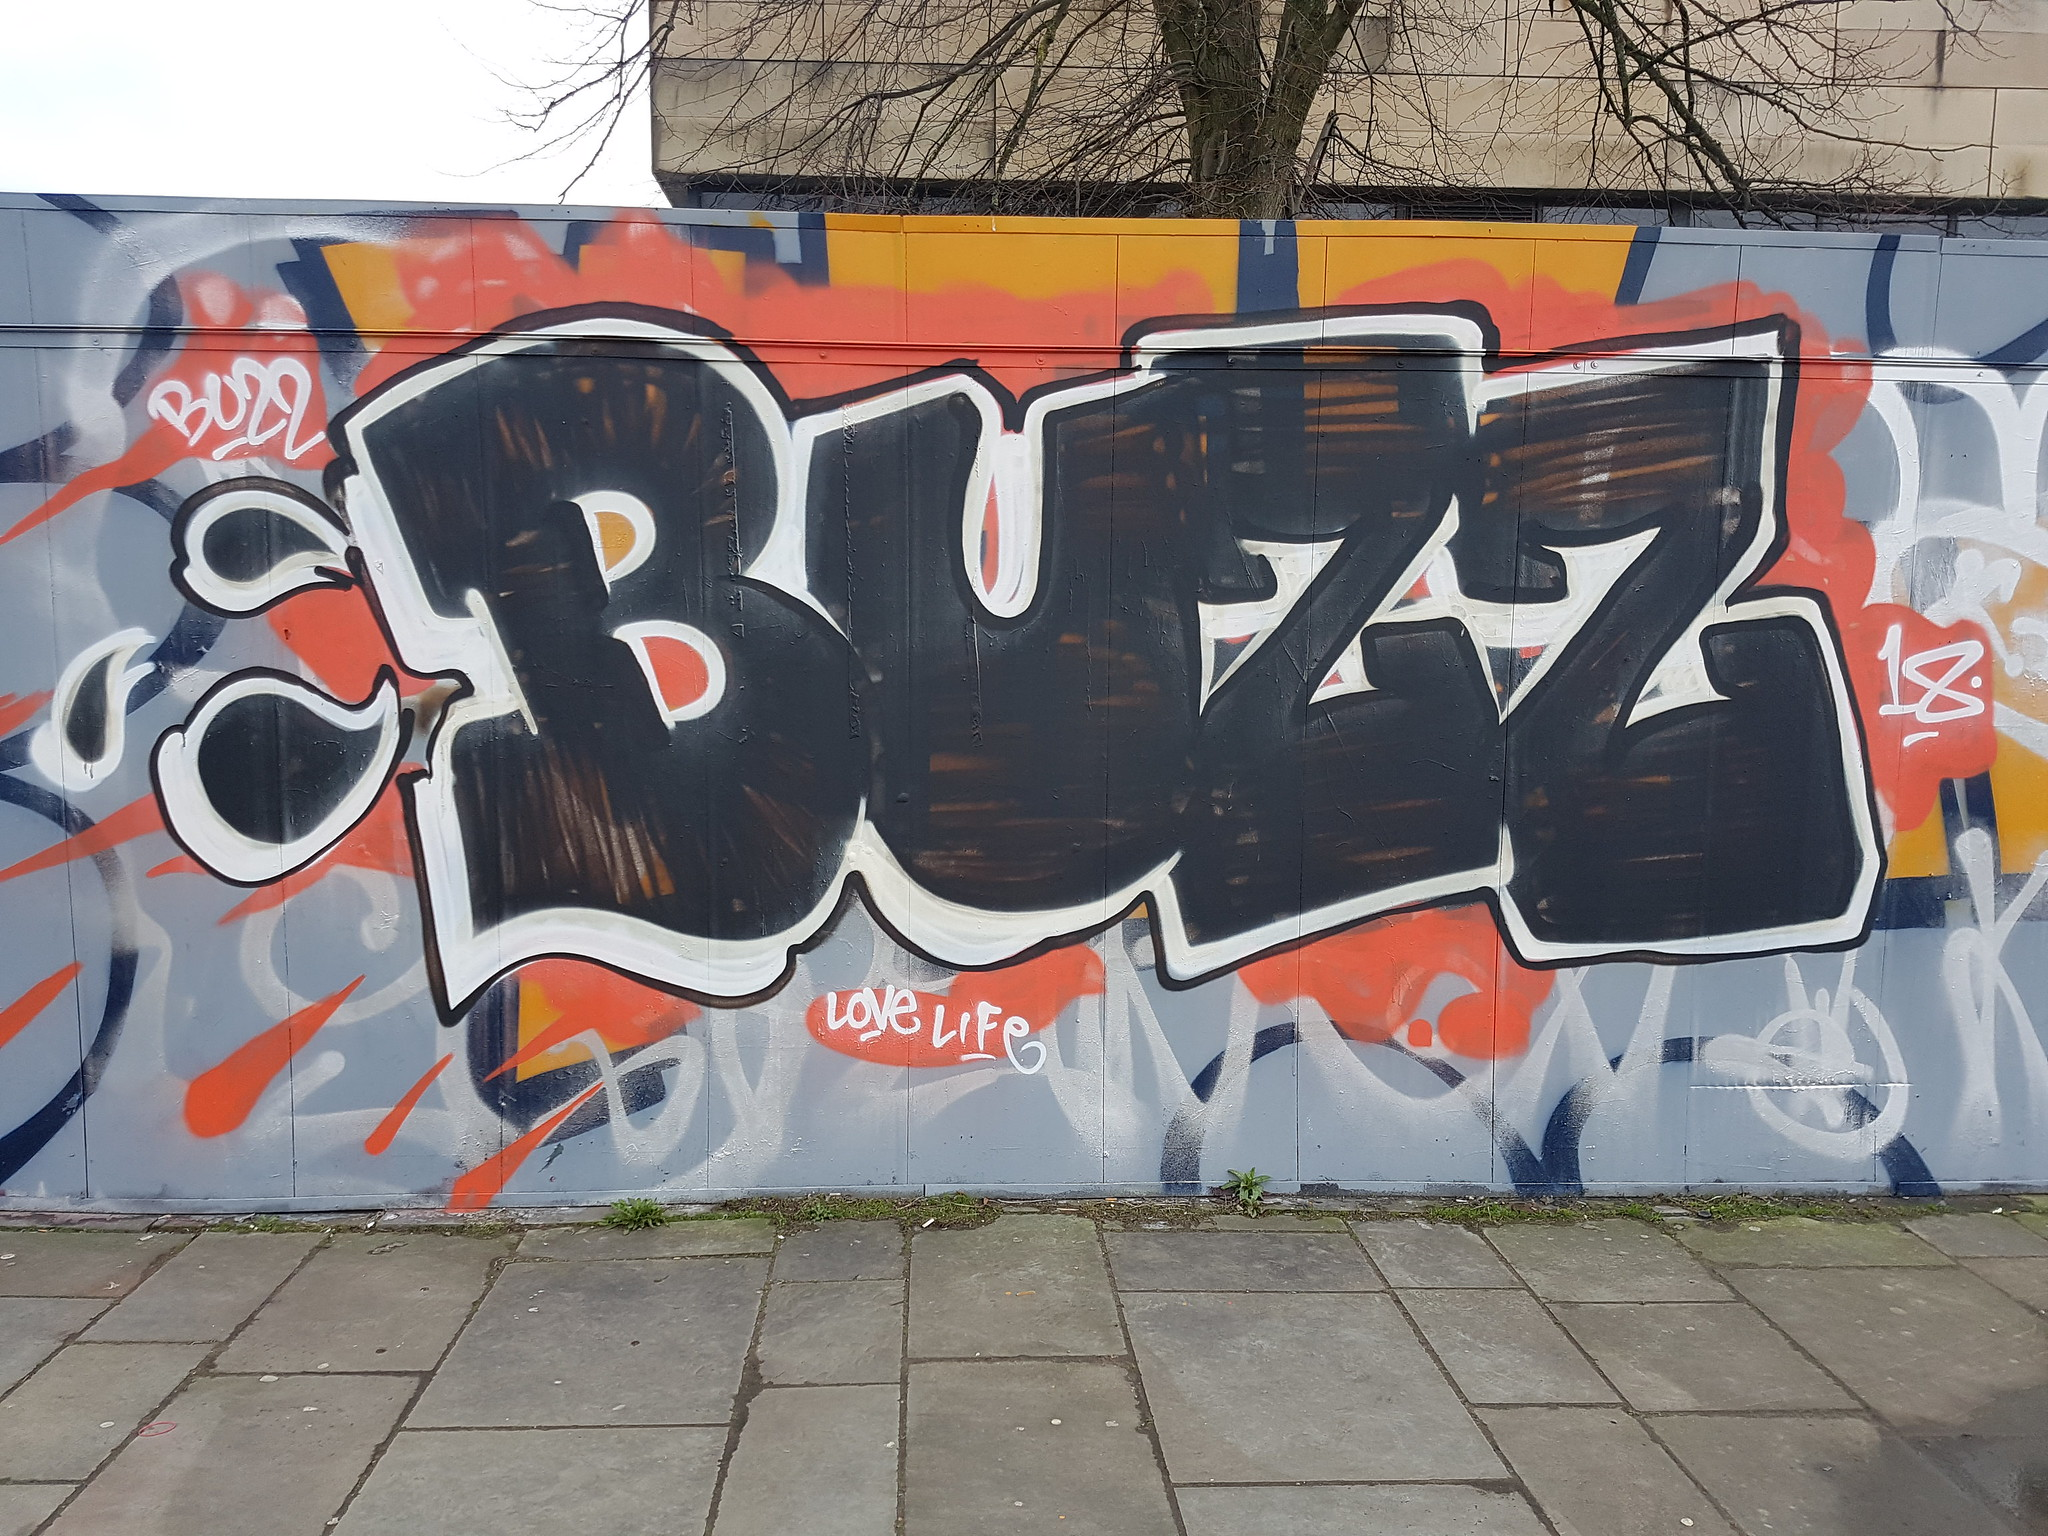 Tributes to Buzz, street art Cardiff